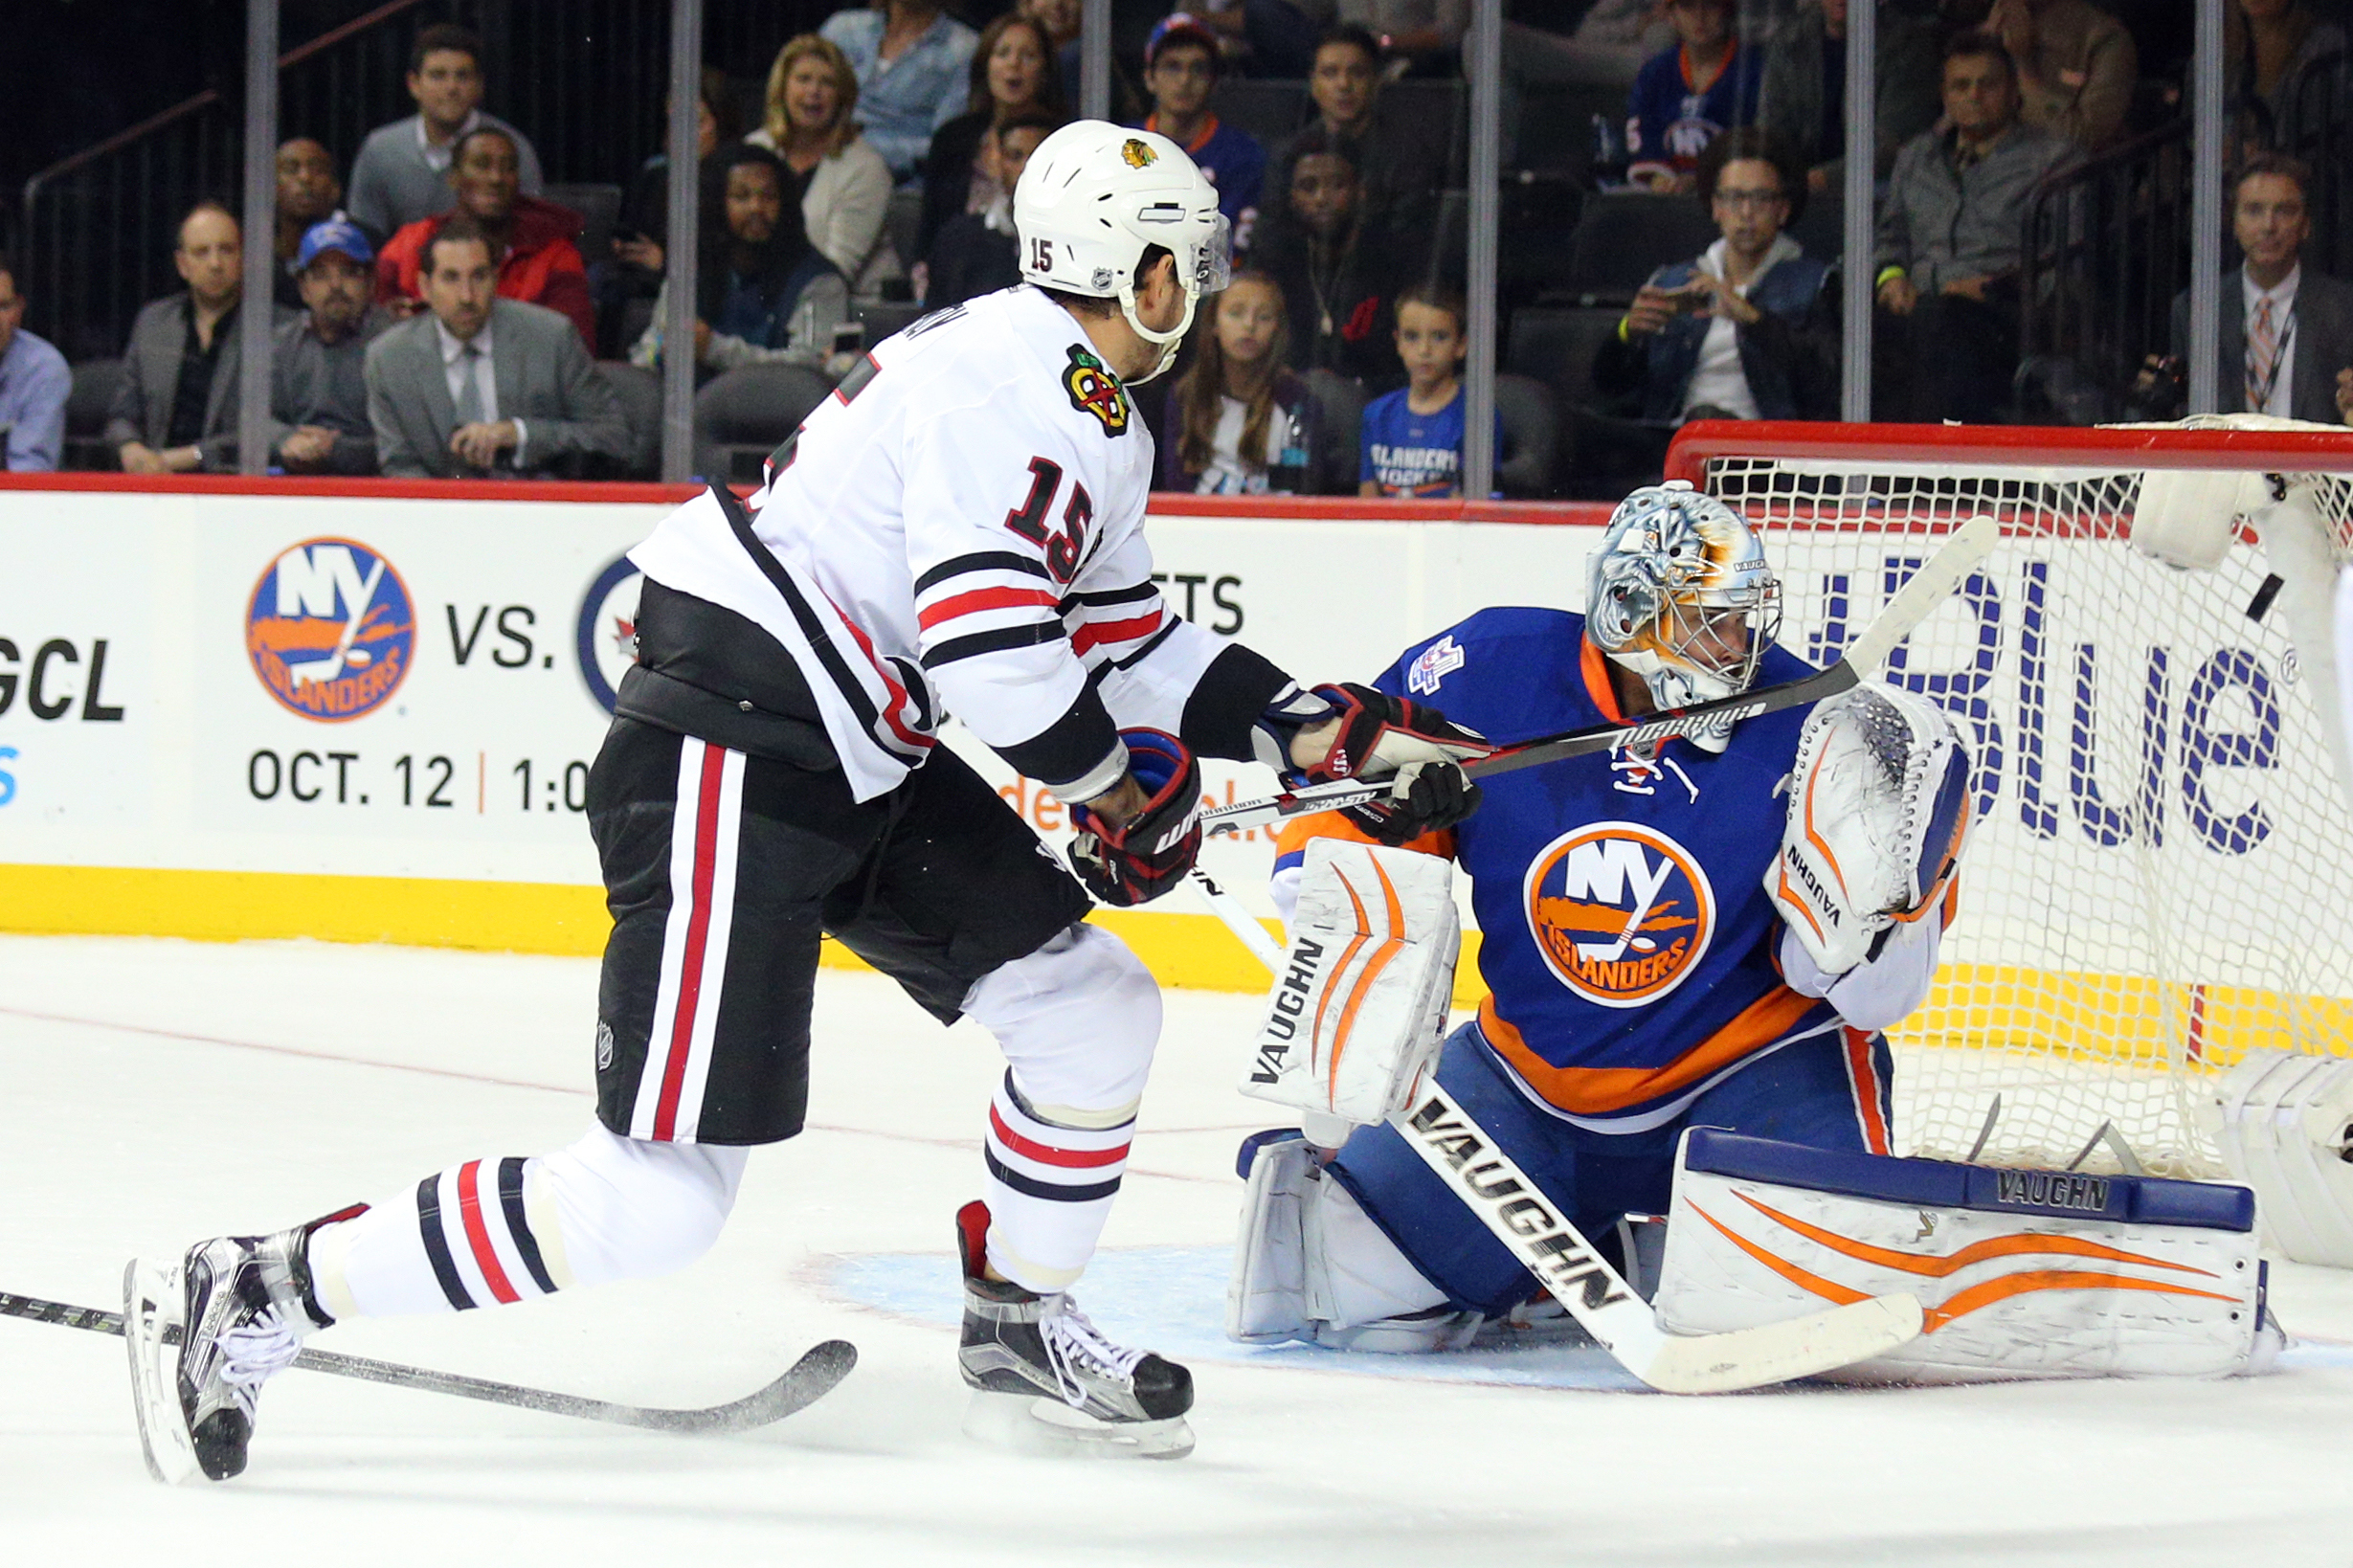 NHL: Chicago Blackhawks at New York Islanders